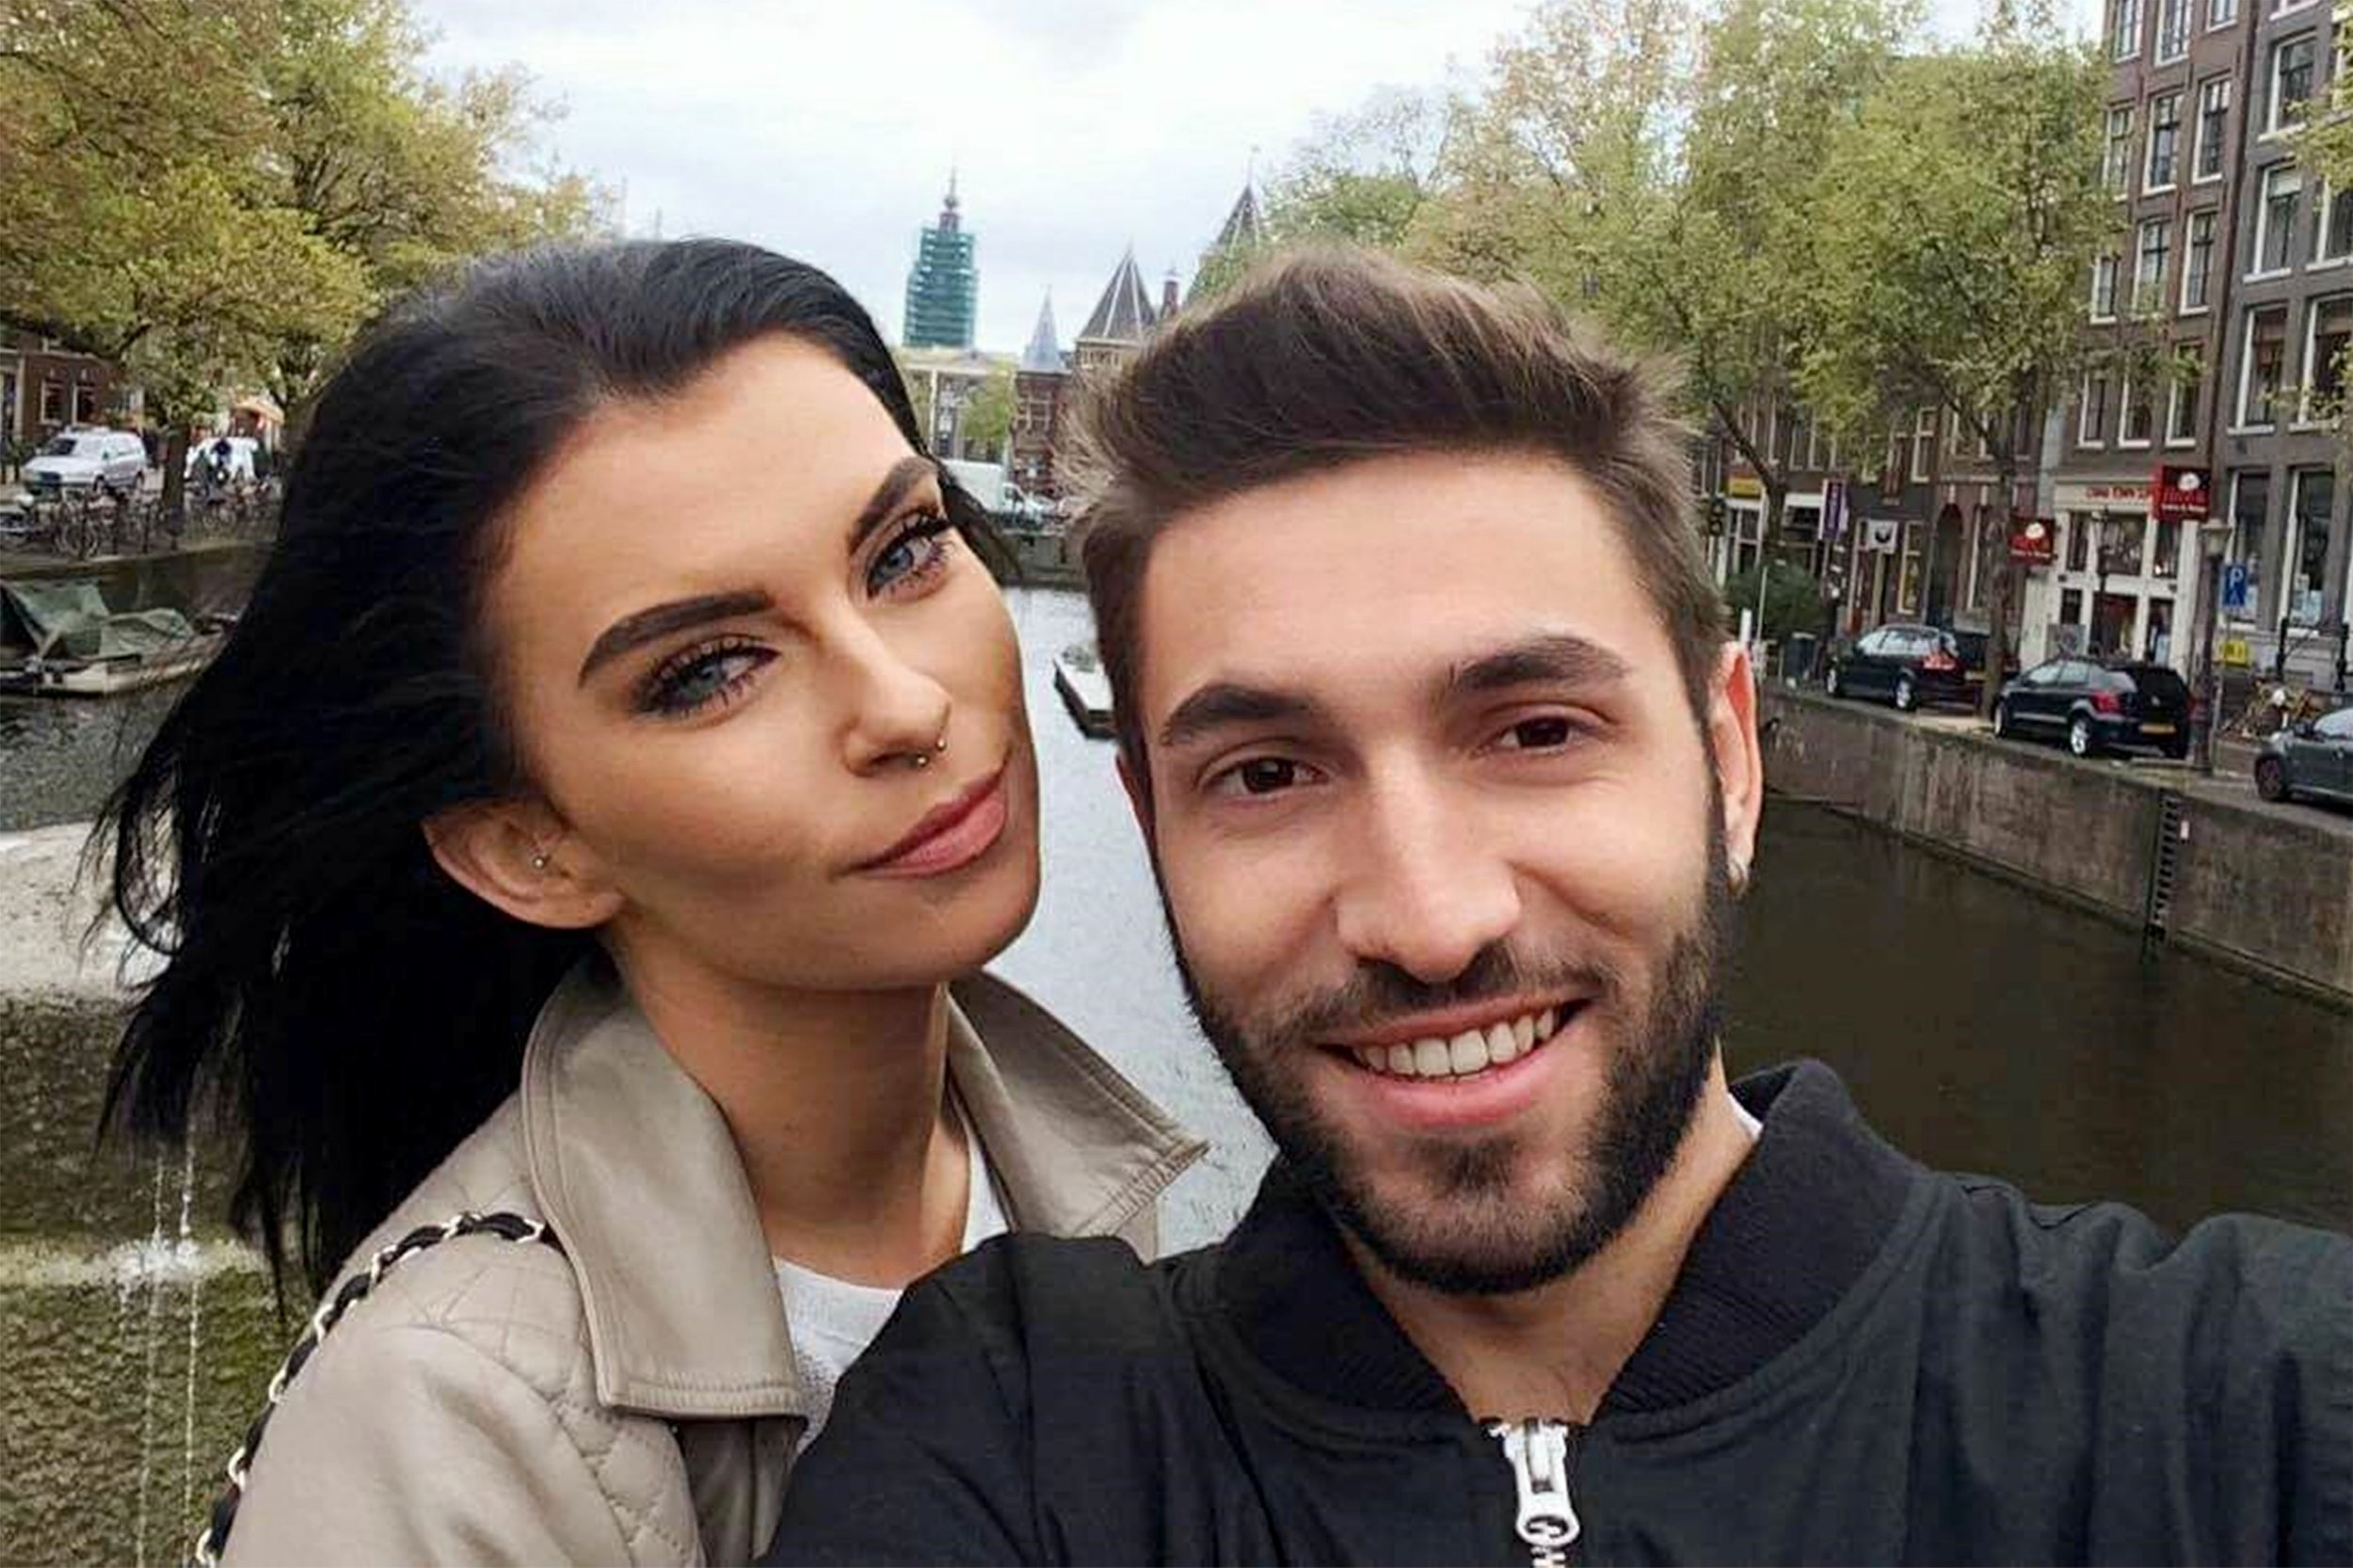 Pic by Caters News - (Pictured: Amsterdam was one of their first city breaks ) - A couple have praised Google translate for their blossoming romance after the pair fell in love despite not speaking the same language.Chloe Smith, 23 and her now boyfriend, Daniele Marisco, 25 from Naples, Italy, first met at a nightclub in Ibiza - and not only could they barely hear one another above the techno music but they also couldnt speak a word of the same language. But after falling in love at first sight, the couple, soon realised they could communicate through using a Google translator and watching videos with subtitles. Now, two years later, Chloe and Daniele, have learnt to speak both Italian and English in a bid to ensure their relationship lasts. They are now living together in Streatham, London where Chloe is a makeup artist and Daniele is a bartender in an Italian restaurant. The pair are now sharing their story to show others that relationships can work, even when theres a language barrier. SEE CATERS COPY.